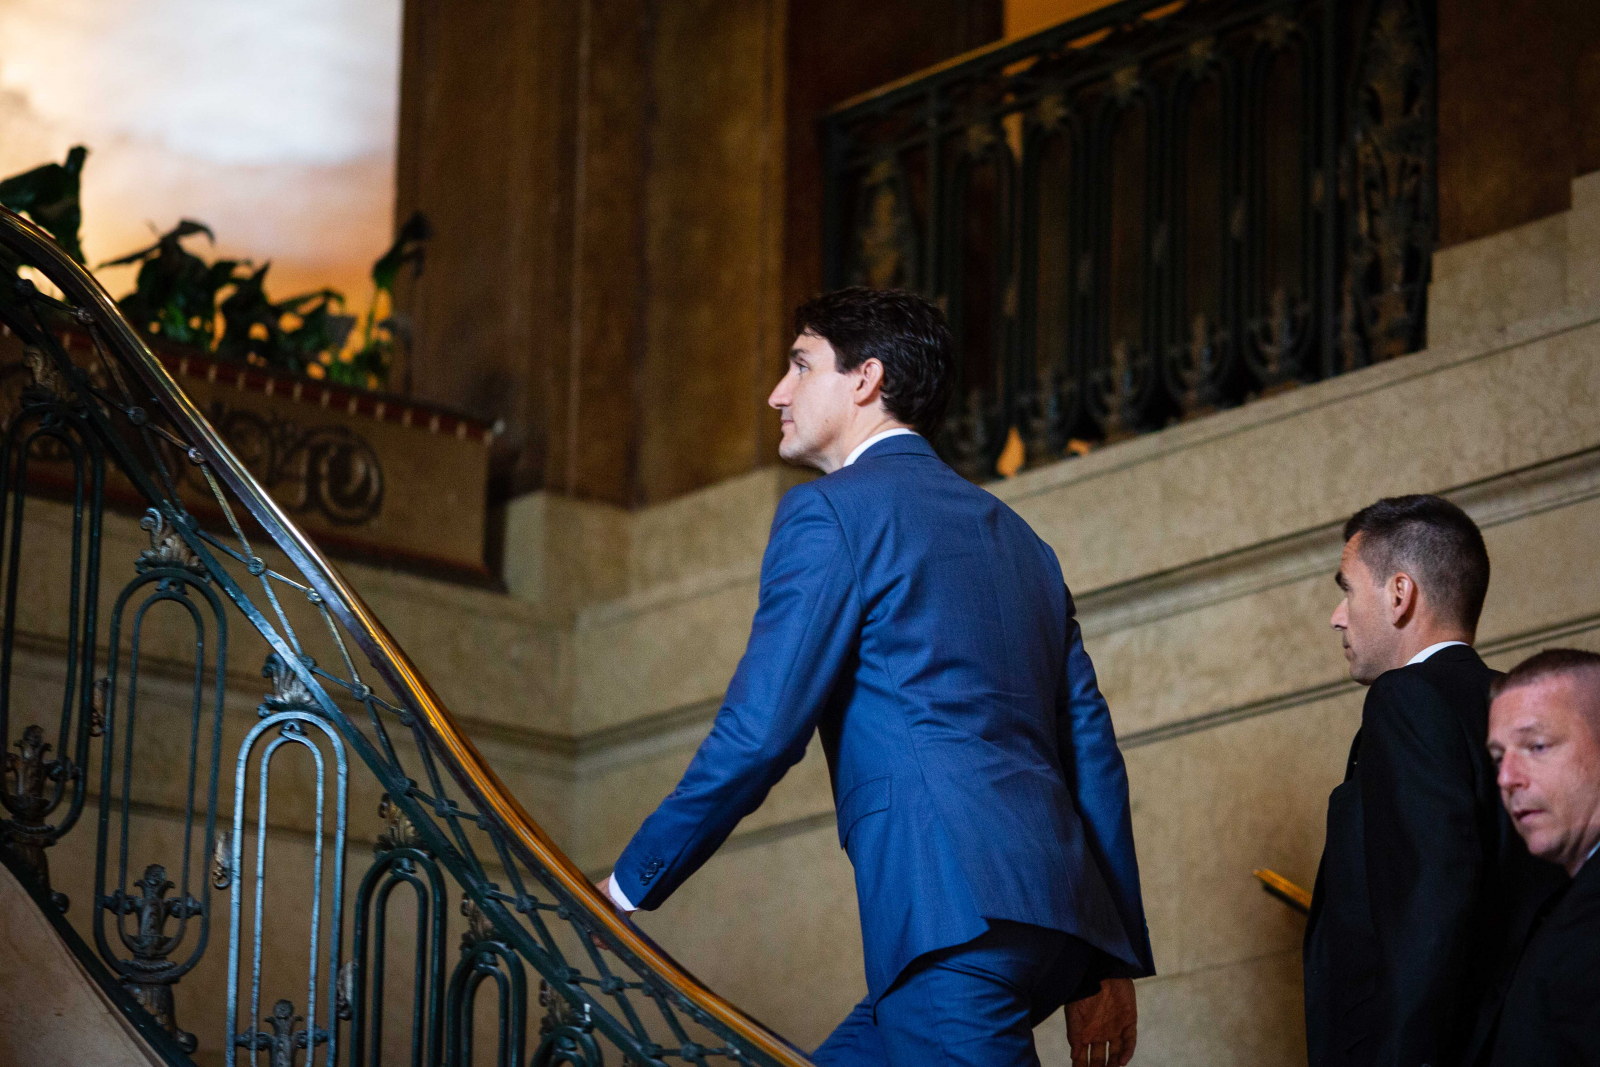 Donald Trump warns Justin Trudeau over comments made at G7 Summit